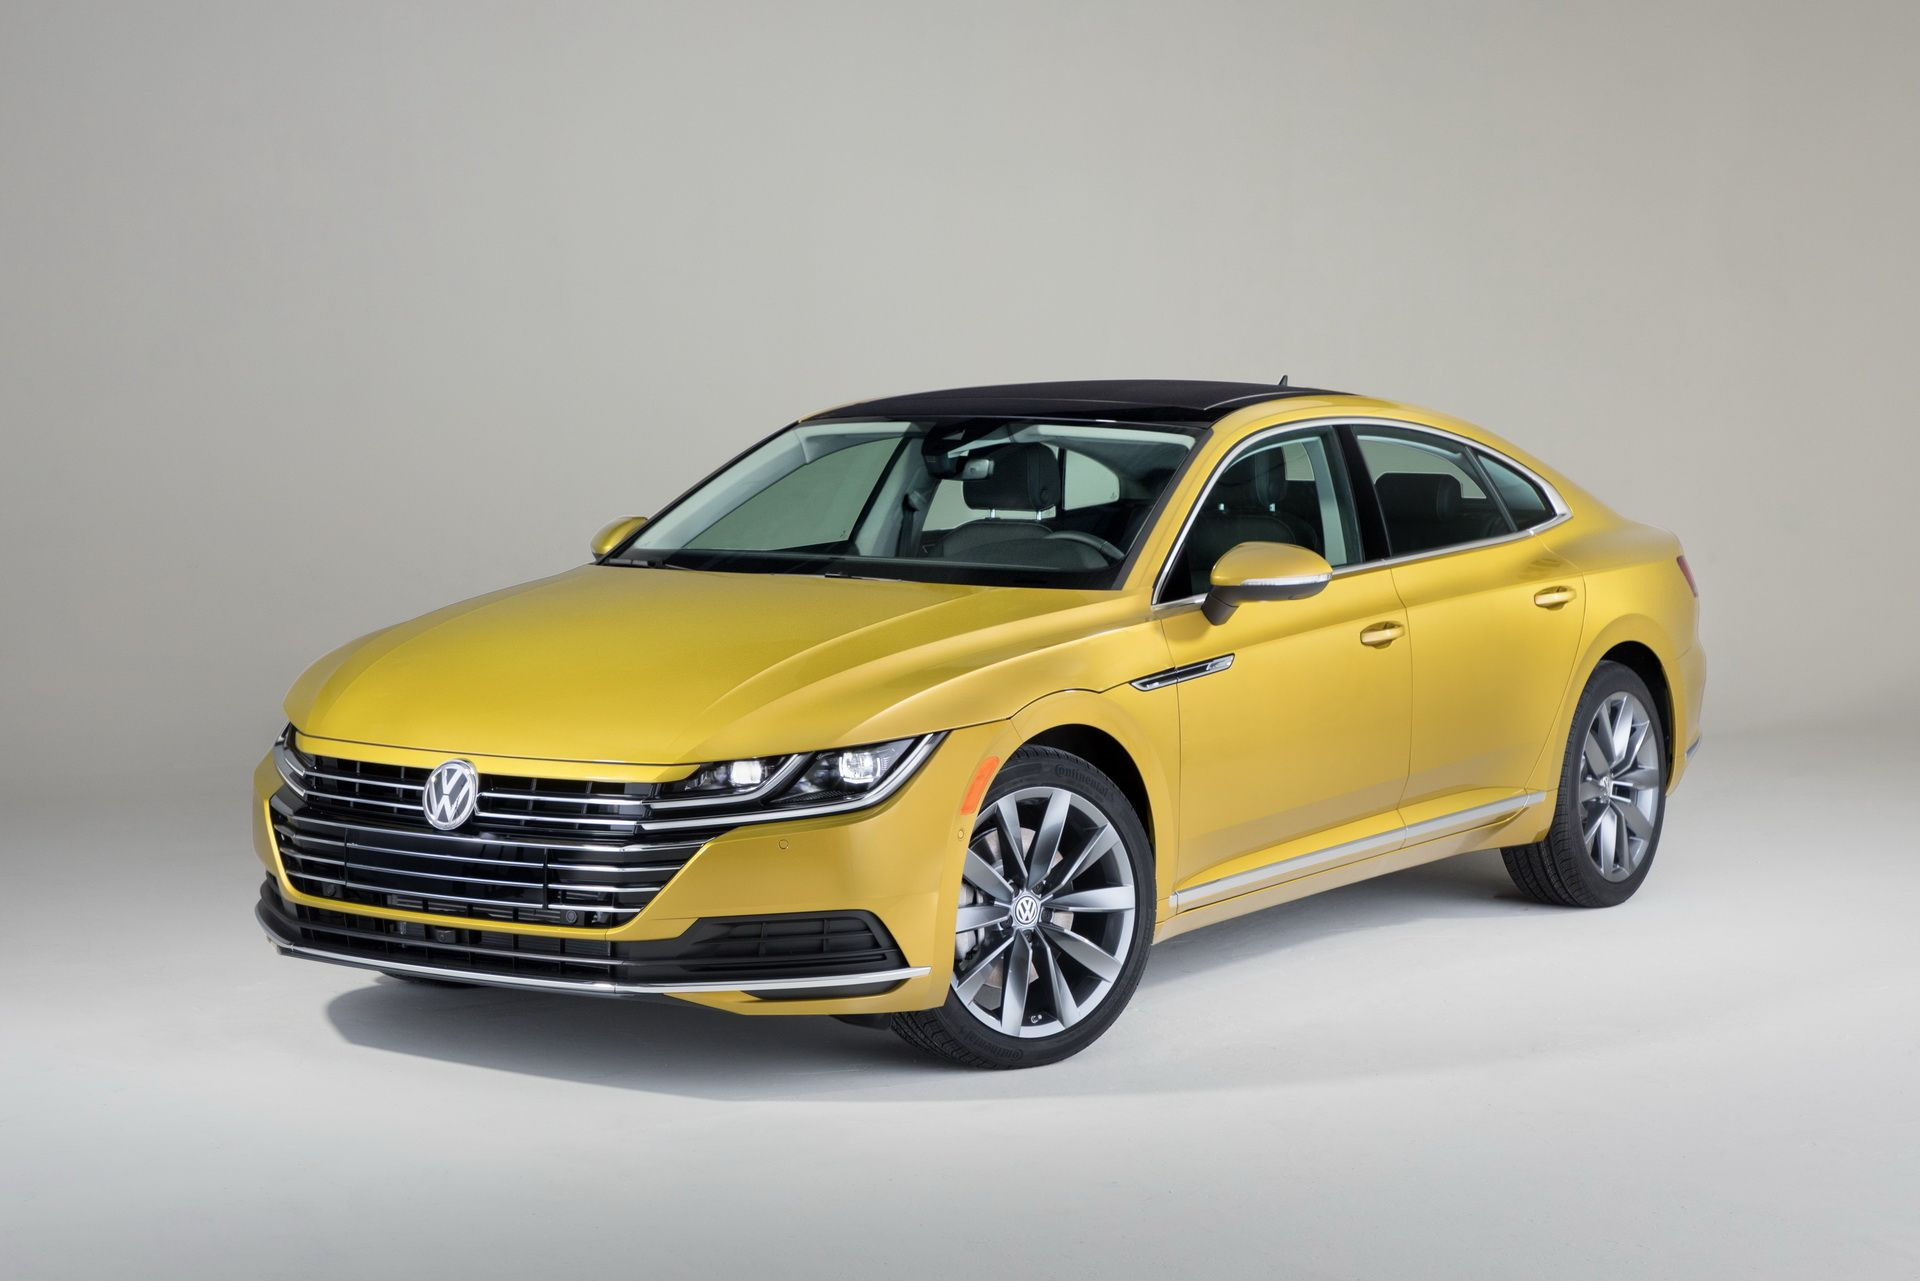 2019 Vw Arteon Comes To U S With 268hp 2 0 Turbo And Awd Read All The Details Chicago Auto Show Volkswagen Cc Vw Cc